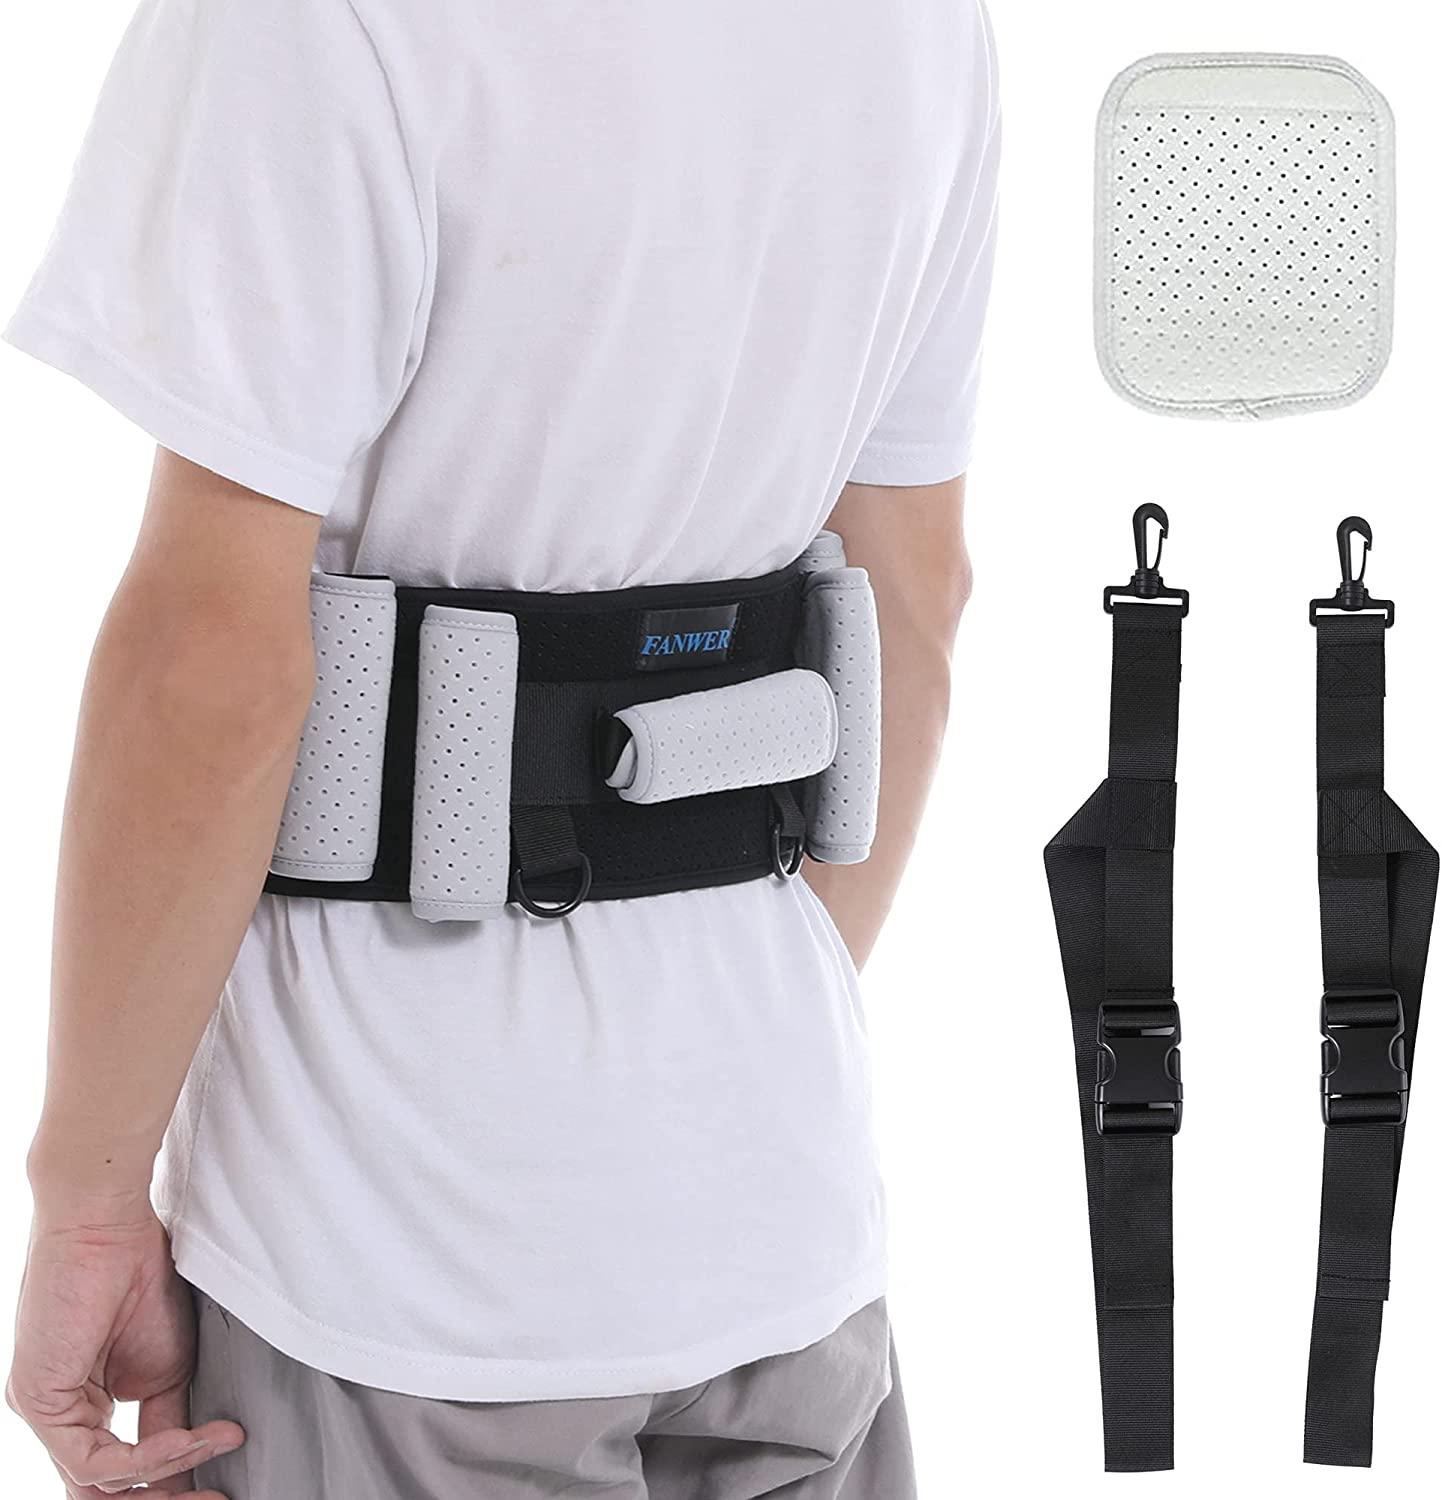 Gait safety Belt Transfer Belts Handle(27-39inch@with Topics on TV Padding